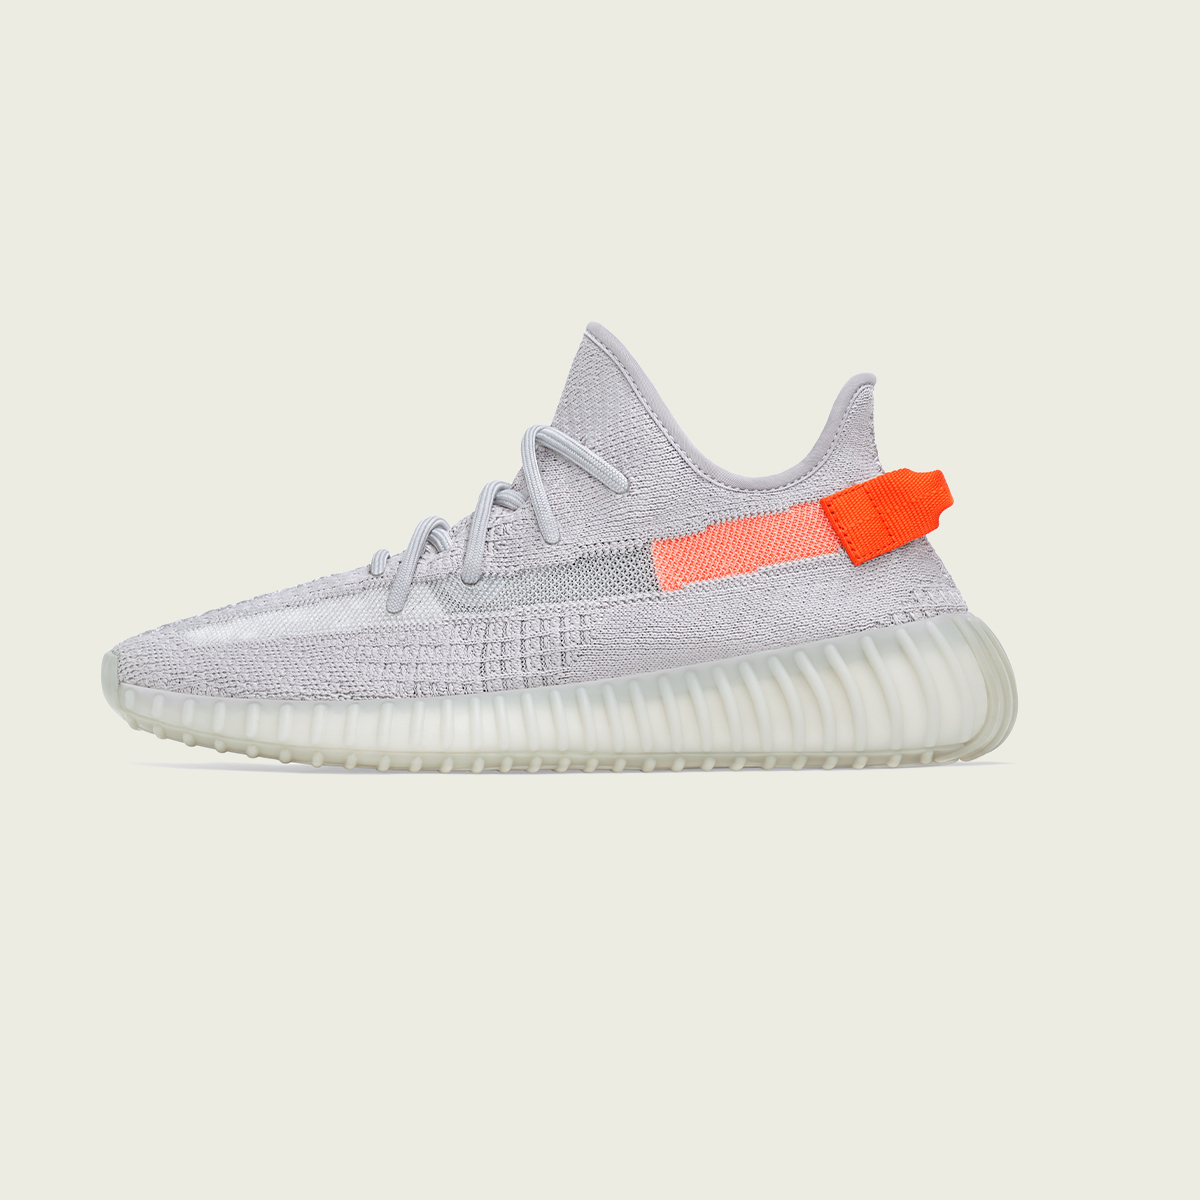 YEEZY 350 V2 'Tail Light'